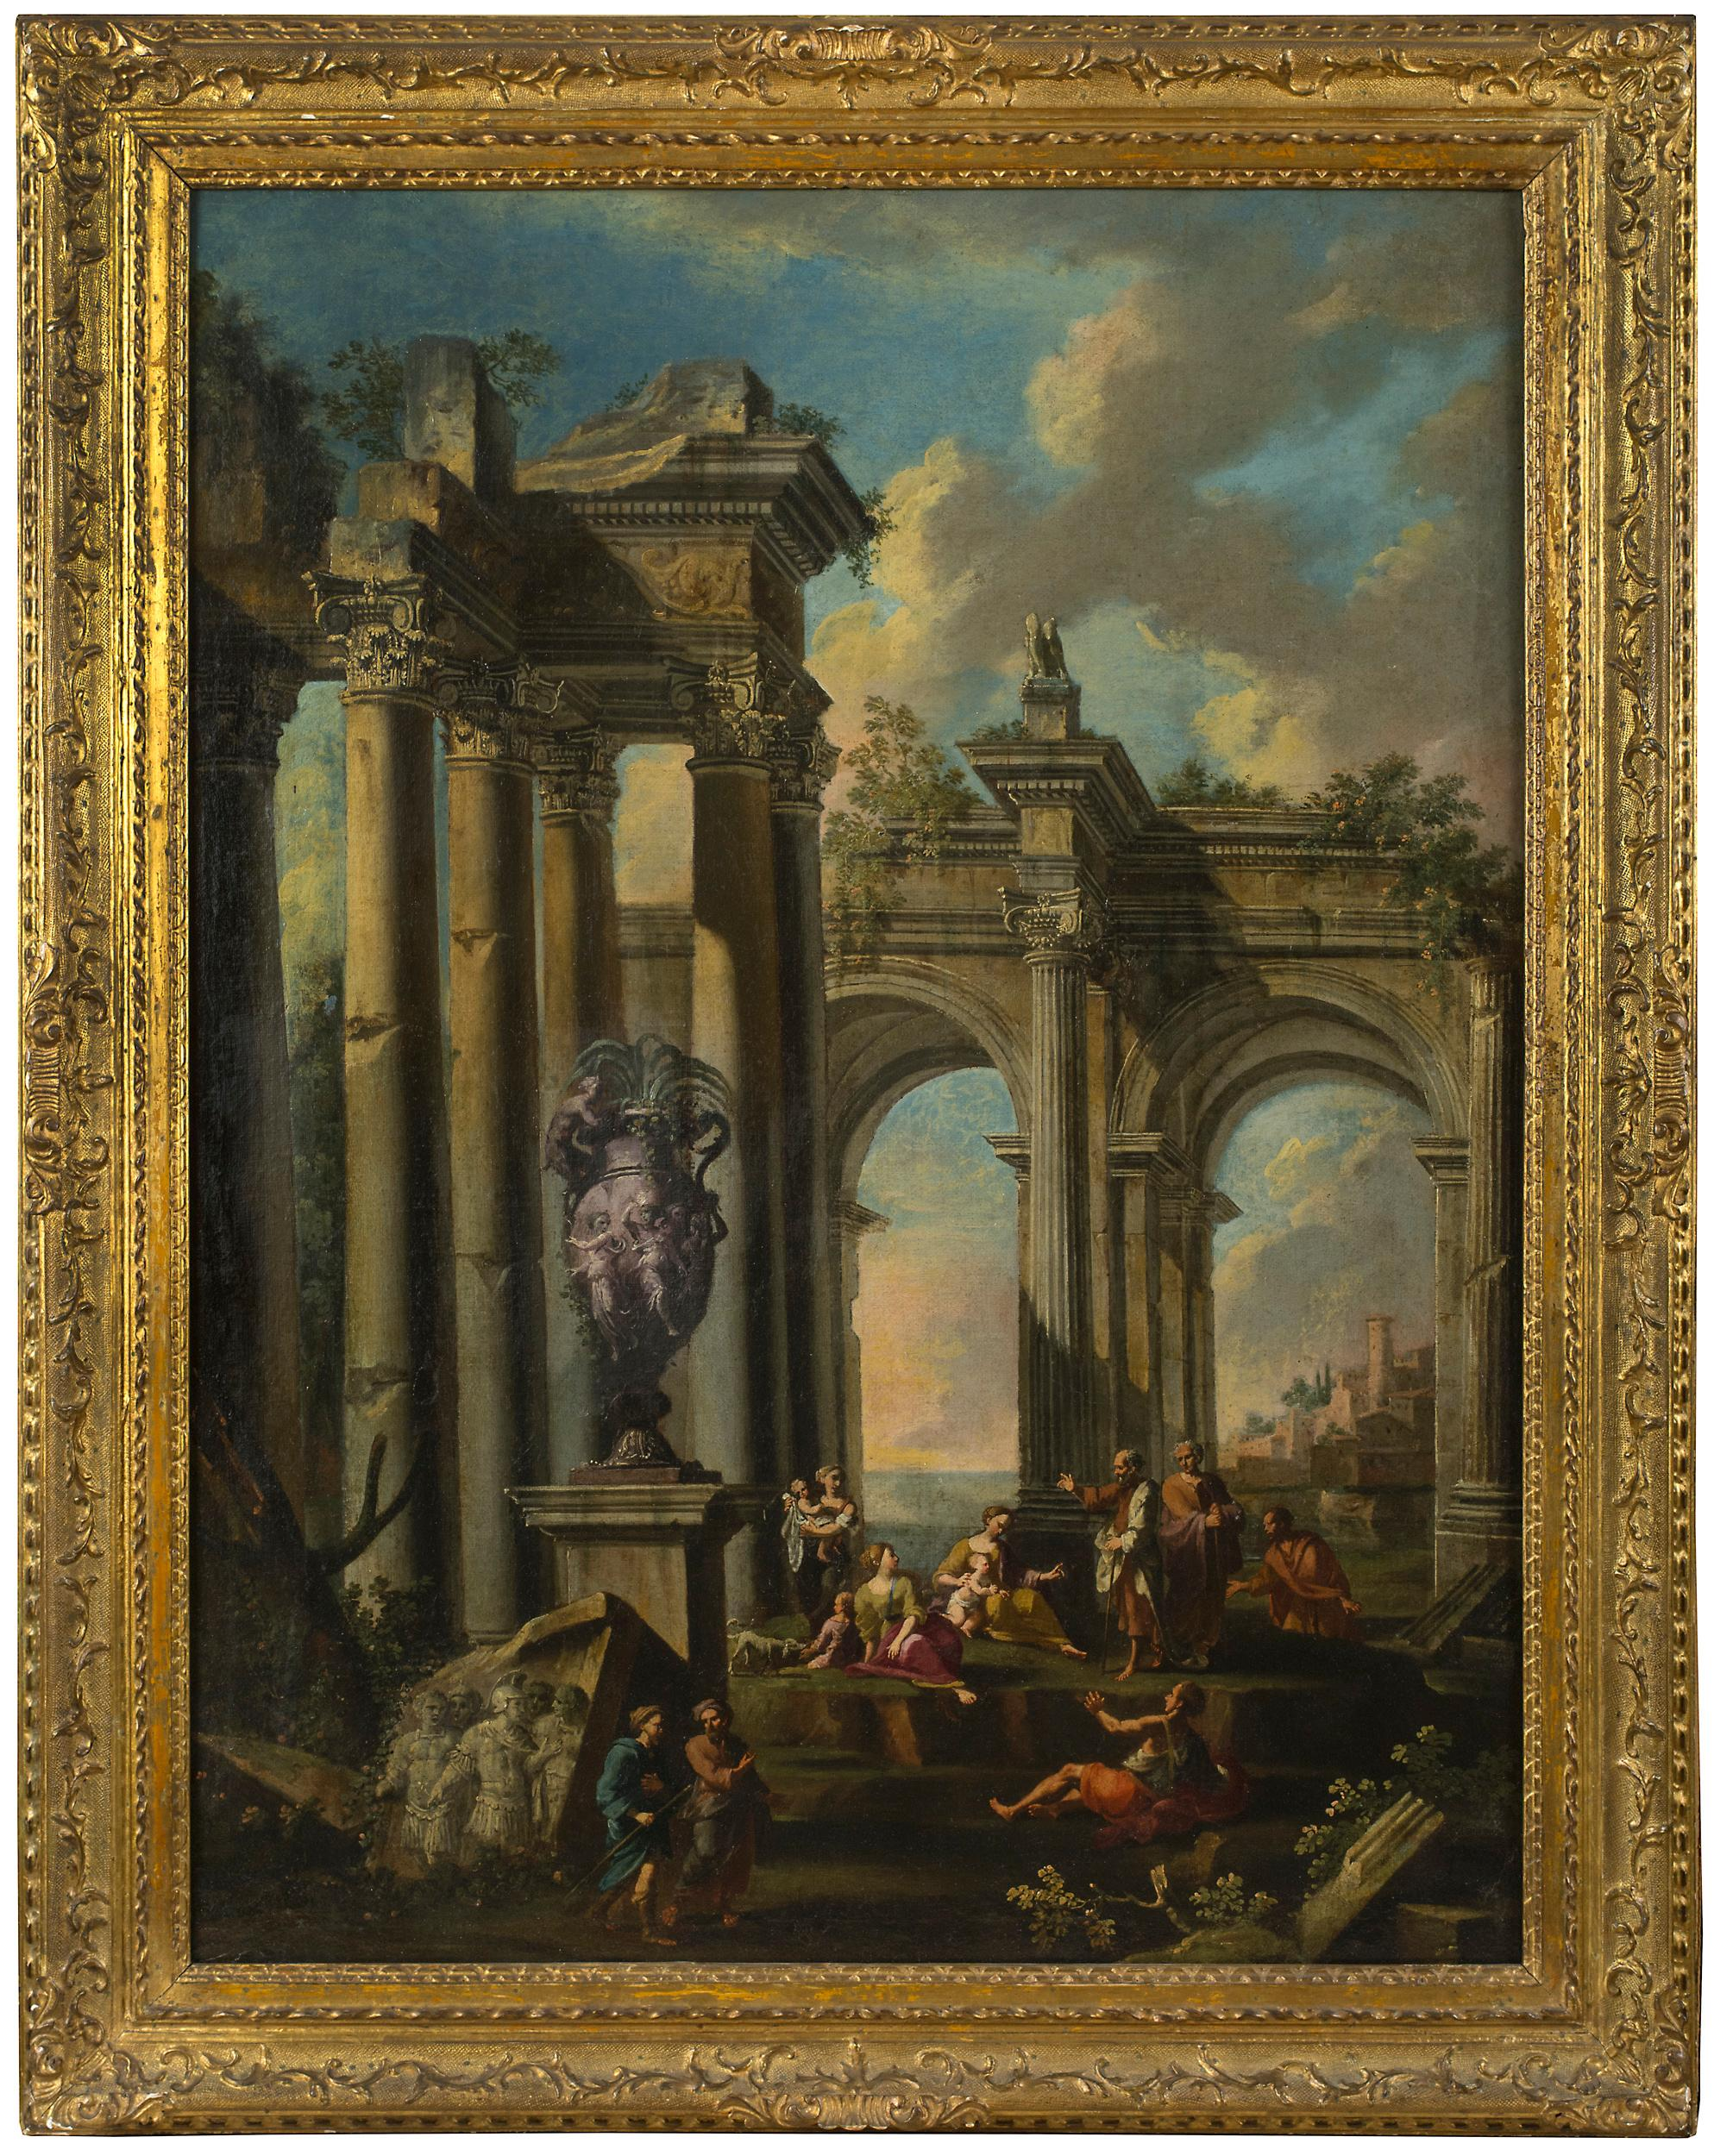 An Architectural Capriccio with the Preaching of an Apostle